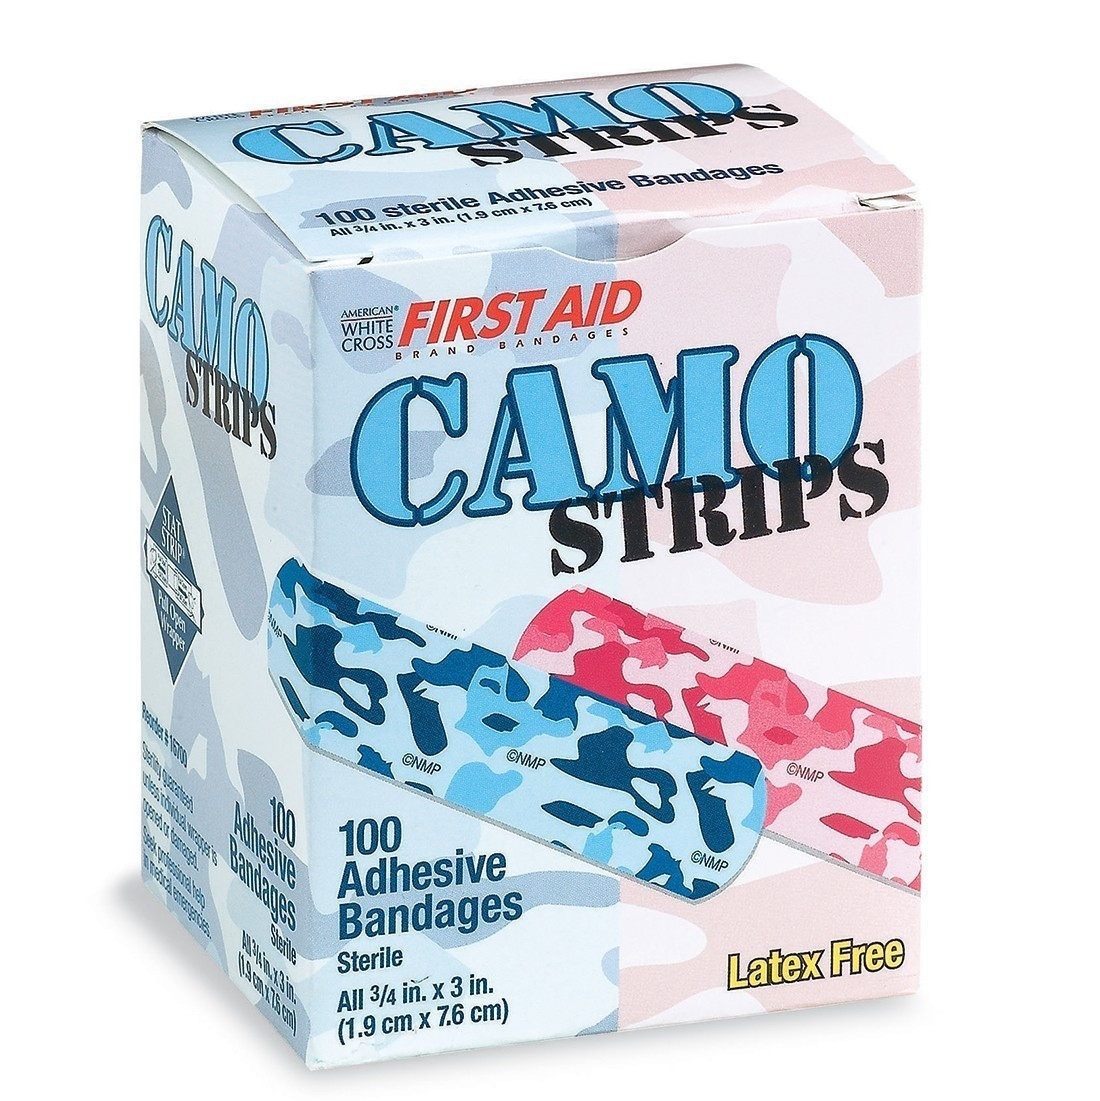 First Aid Pink and Blue Camouflage Bandages [image]